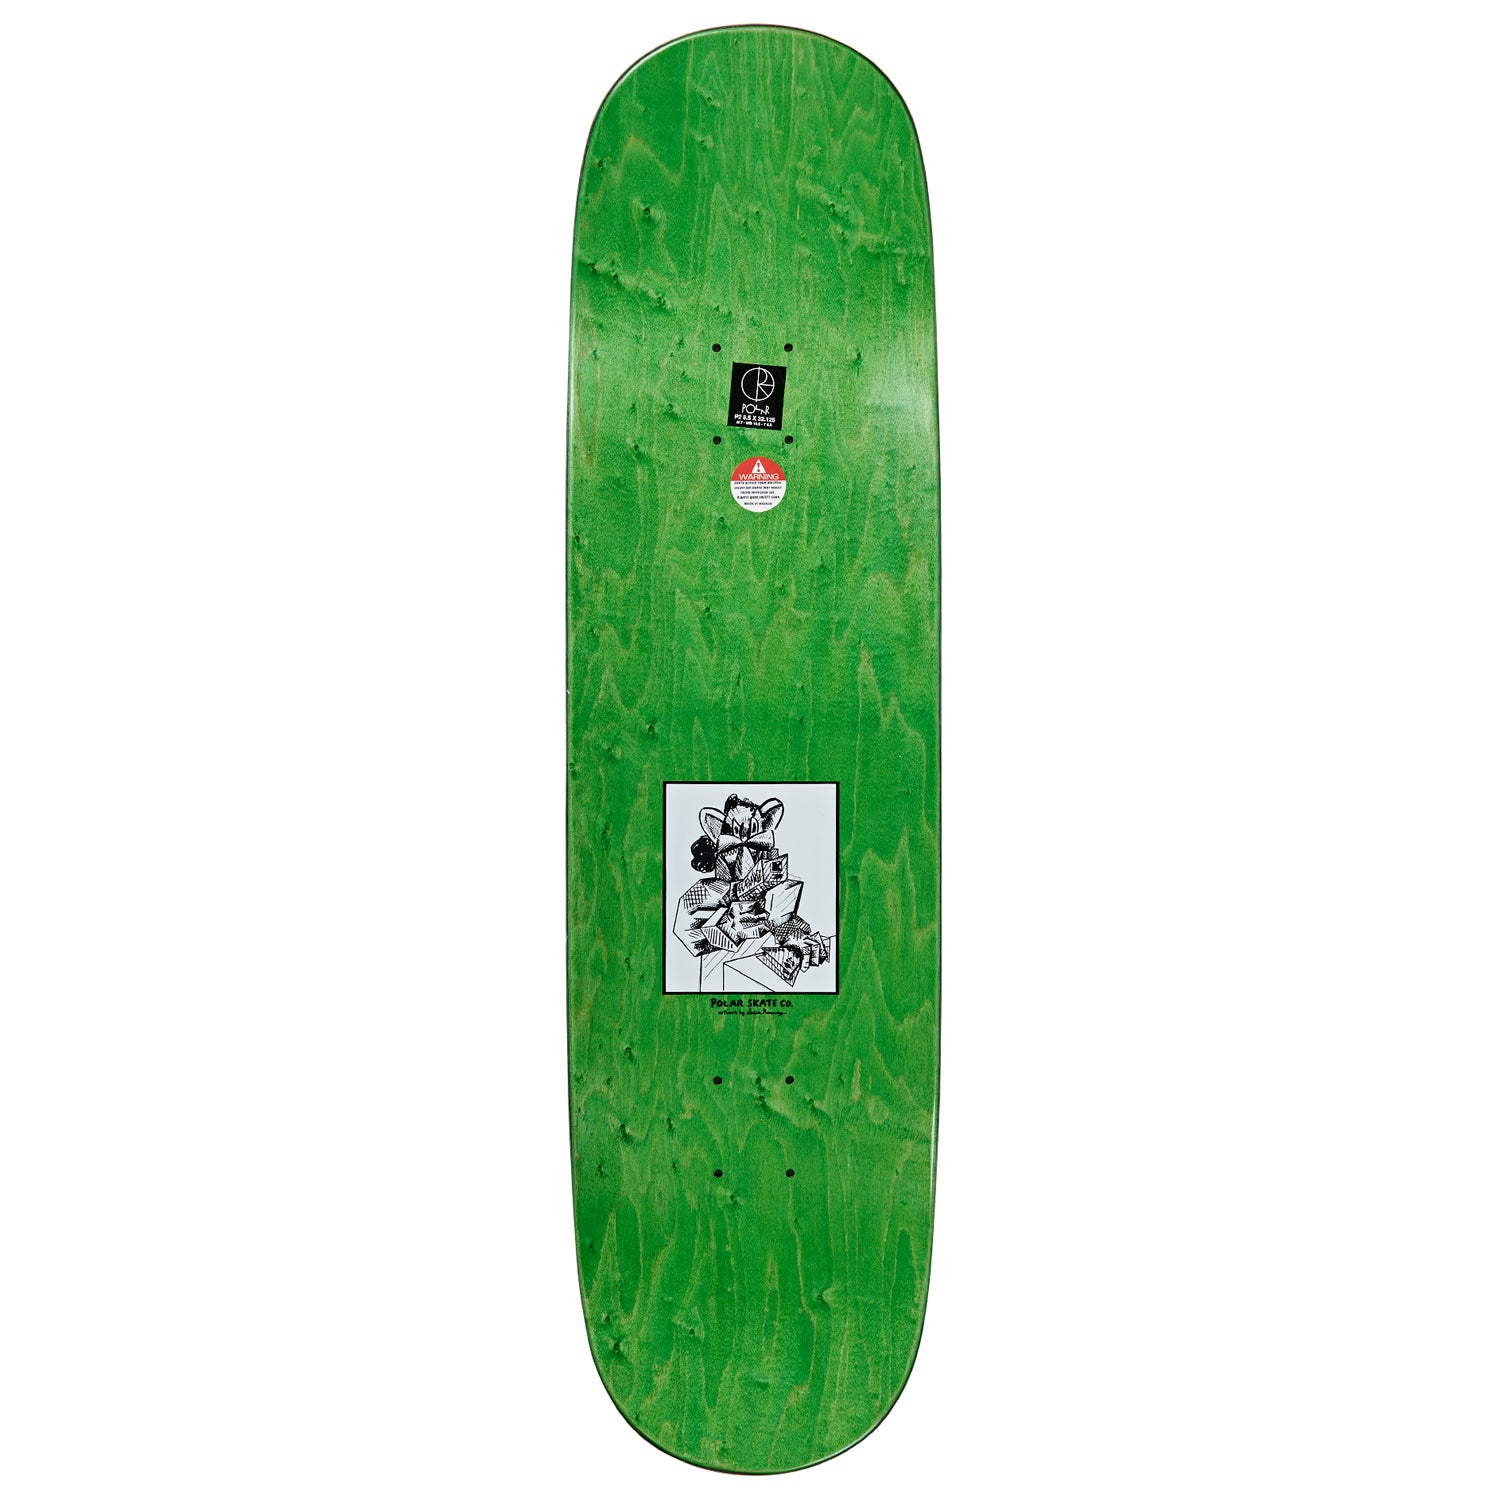 Polar Aaron Herrington Diner Deck (P2 Shape) 8.5""